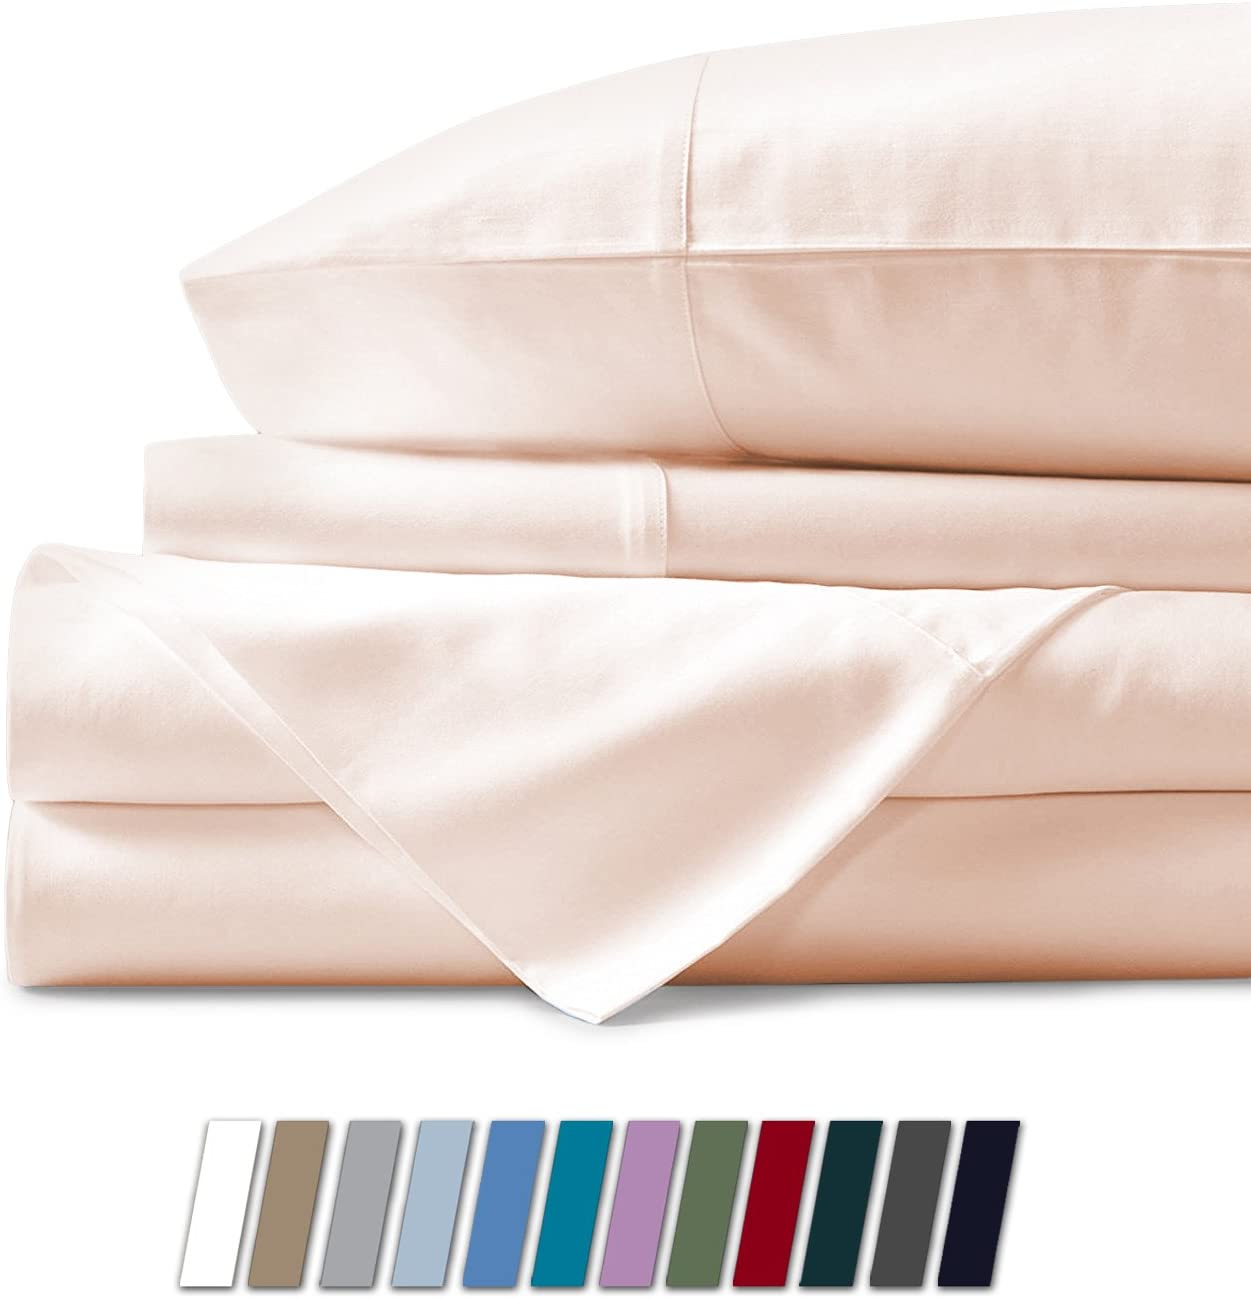 500 Thread Count 100% Cotton Sheet Ivory King Sheets Set, 4-Piece Long-staple Combed Pure Cotton Best Sheets For Bed, Breathable, Soft & Silky Sateen Weave Fits Mattress Upto 18'' Deep Pocket